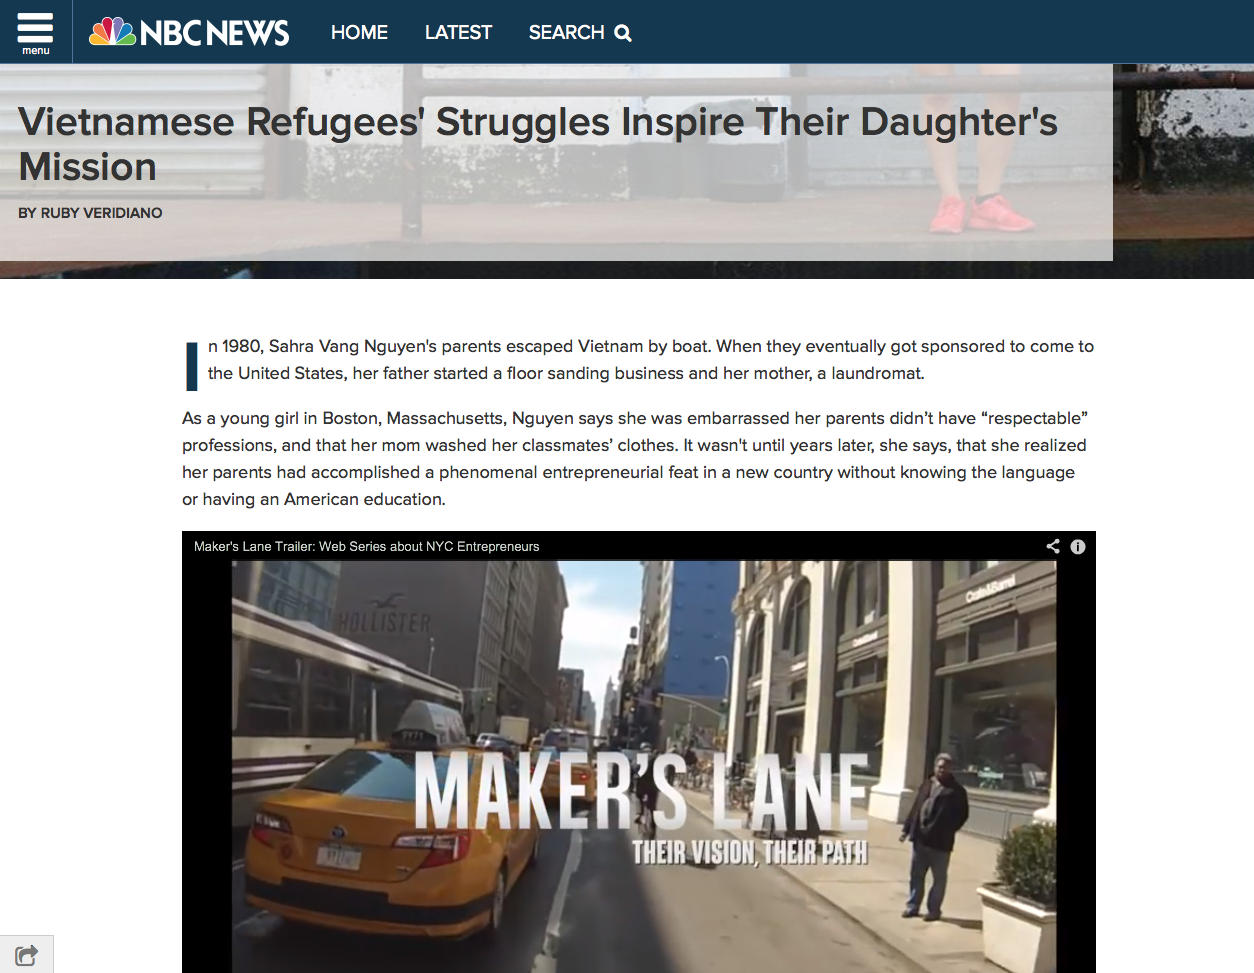 Click the image to continue reading about Sahra Vang's feature on NBCNews.com